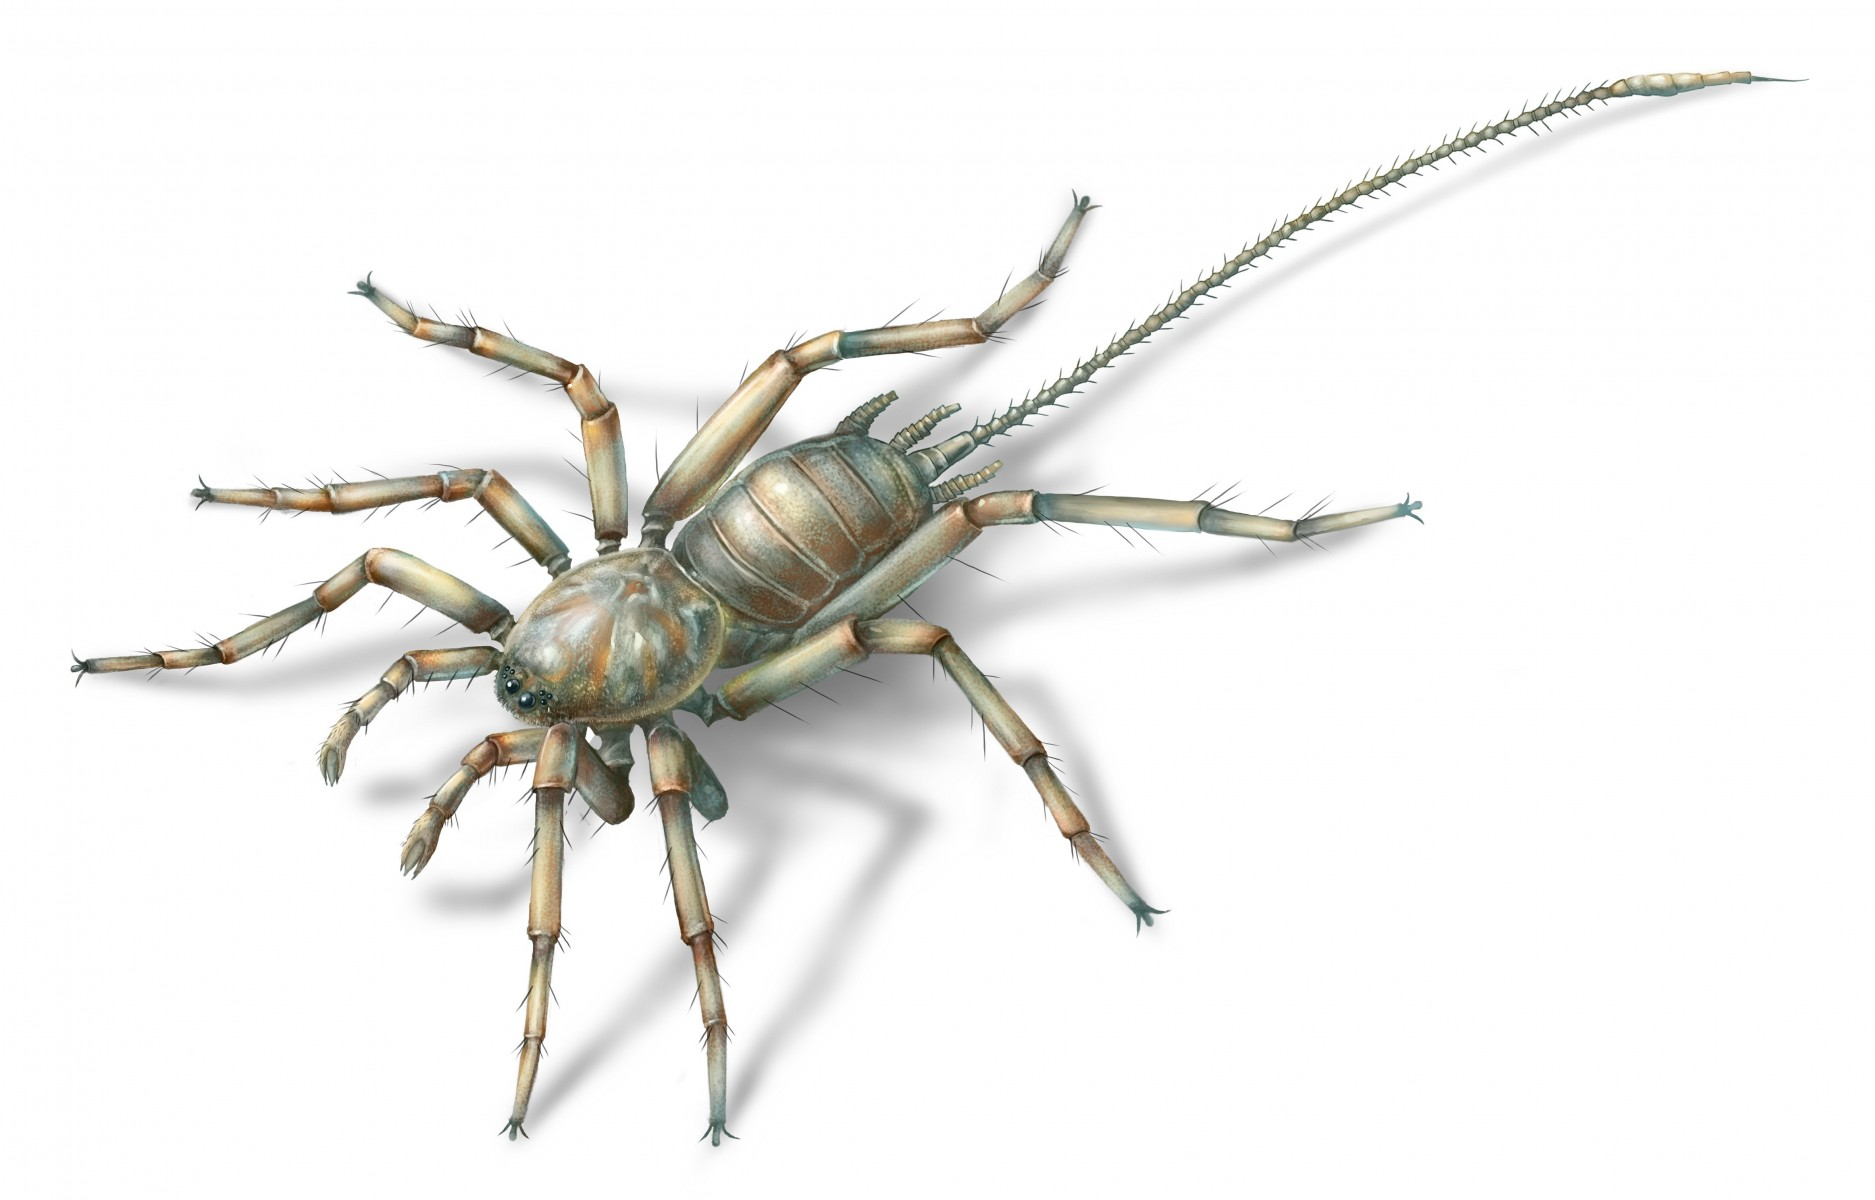 Arachnophobes take heed: This ancient spider had a whip-like tail